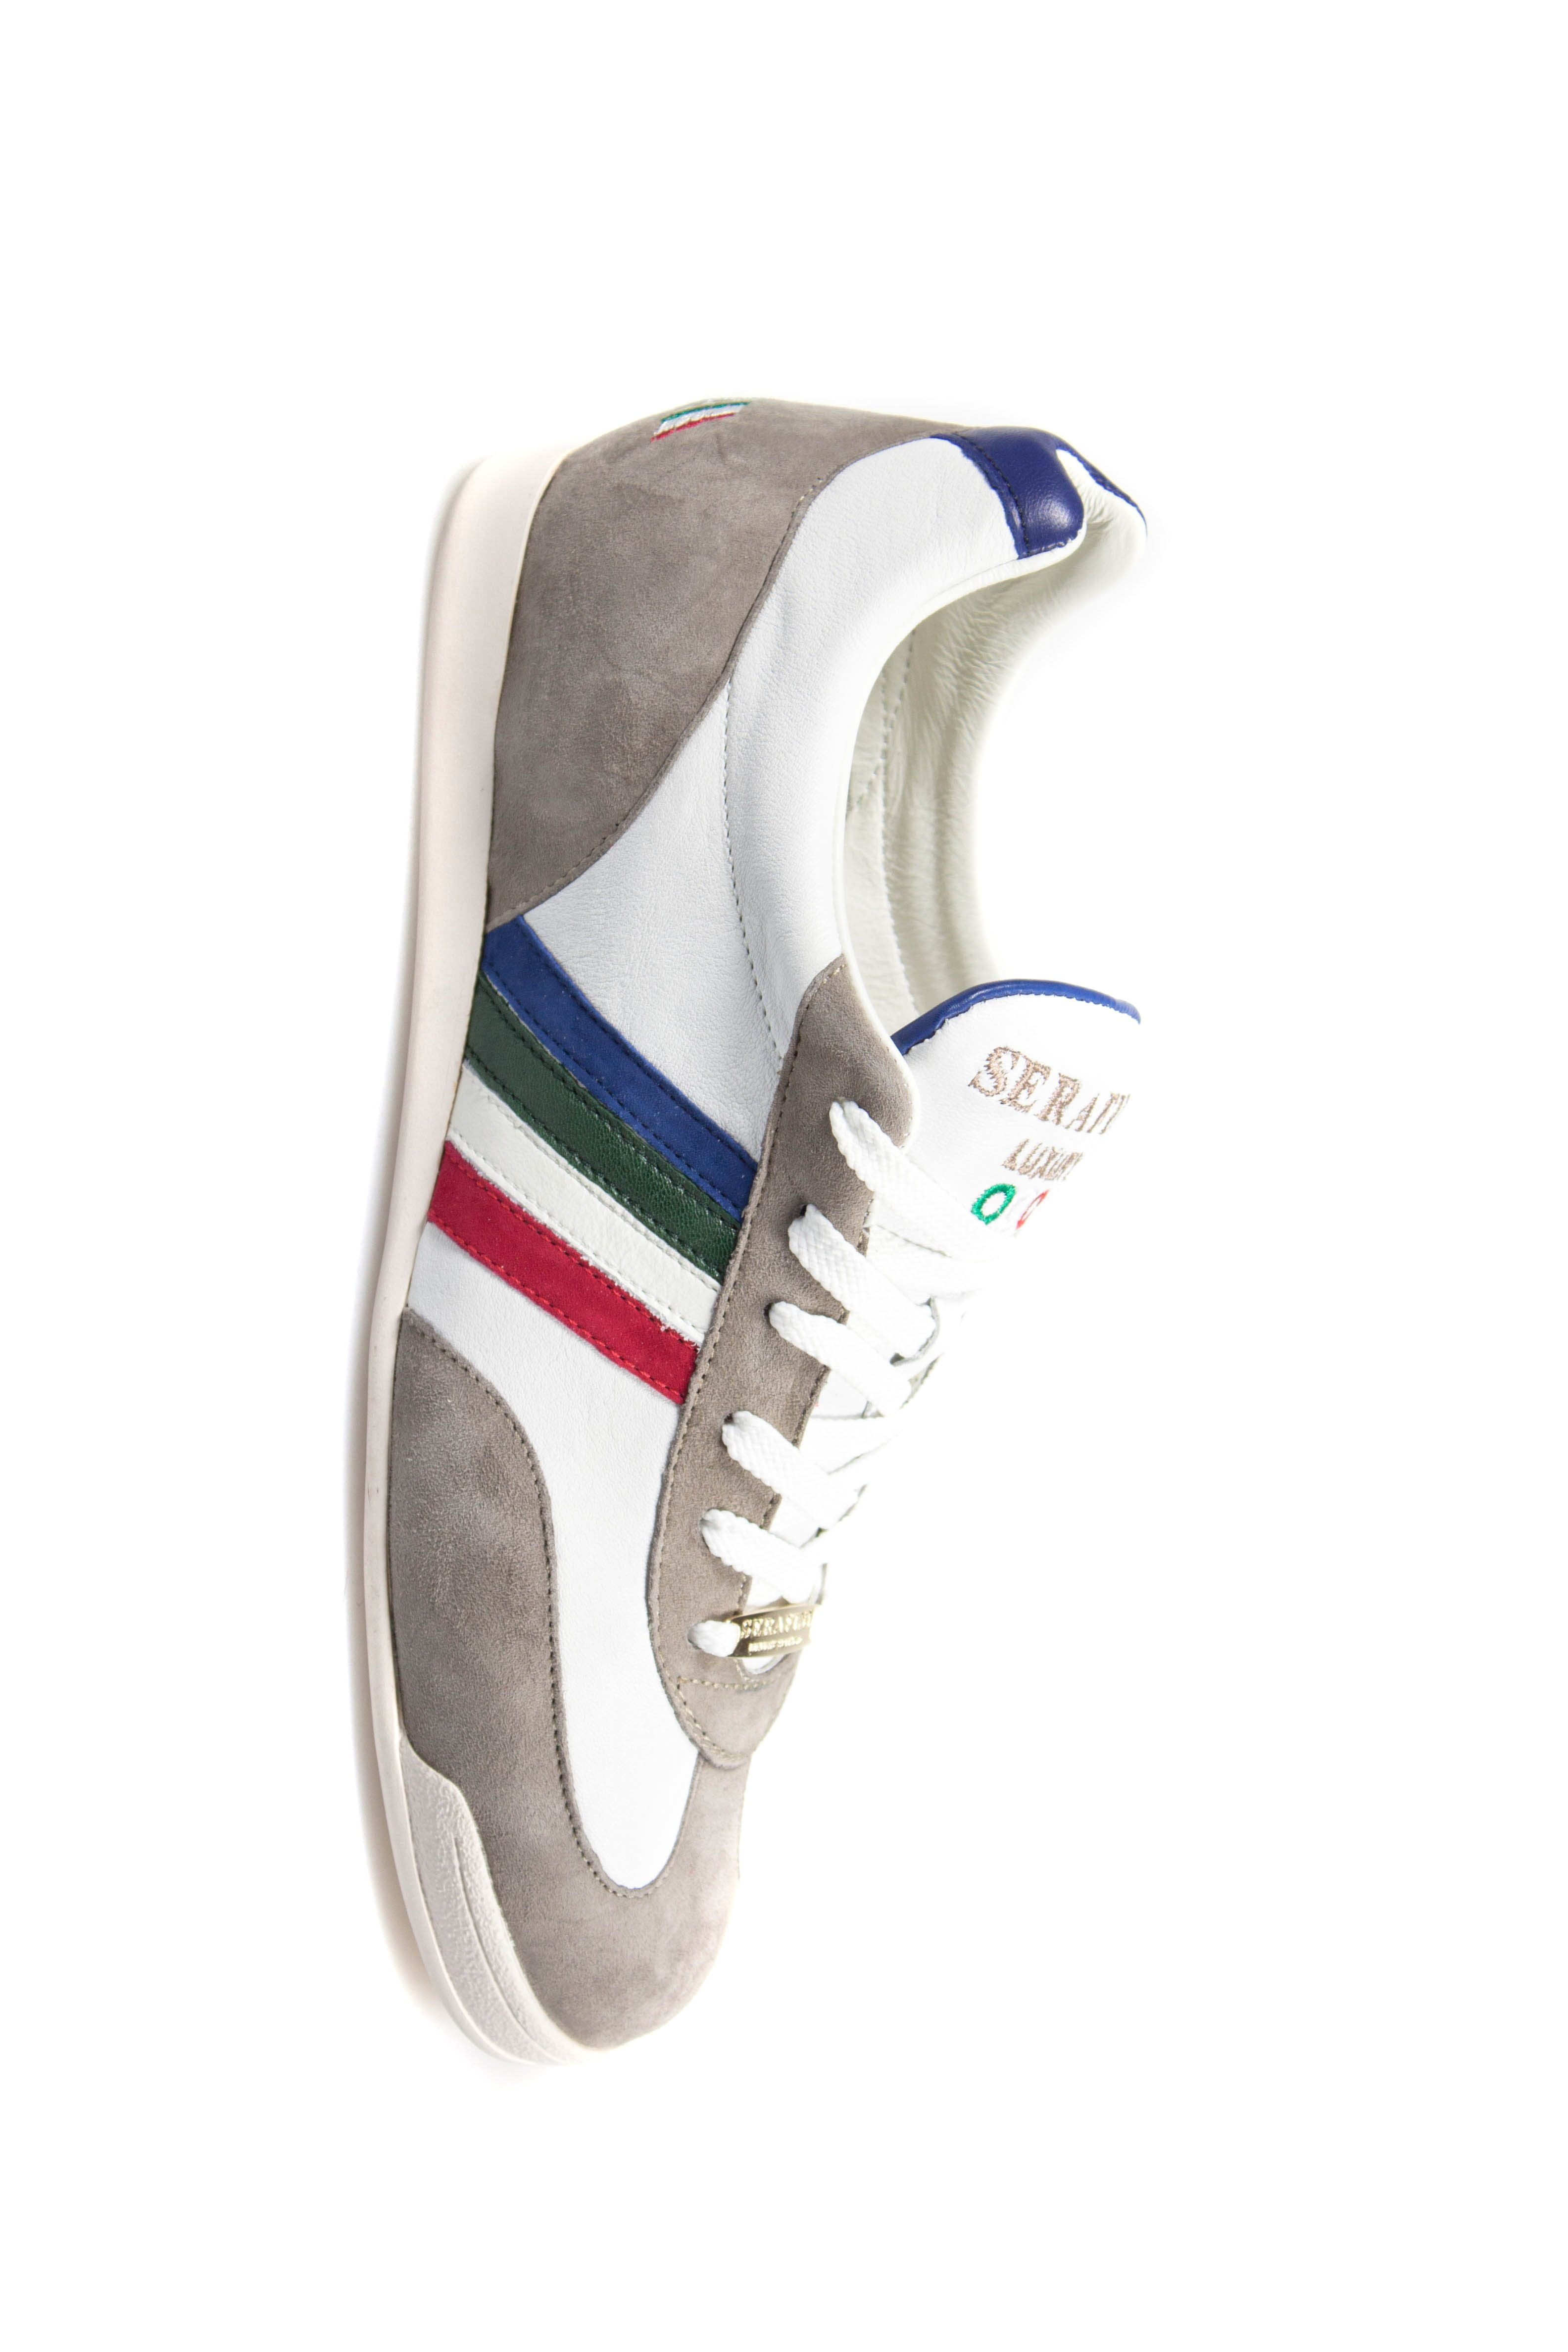 Luxury sneakers, Serafini, High end shoes